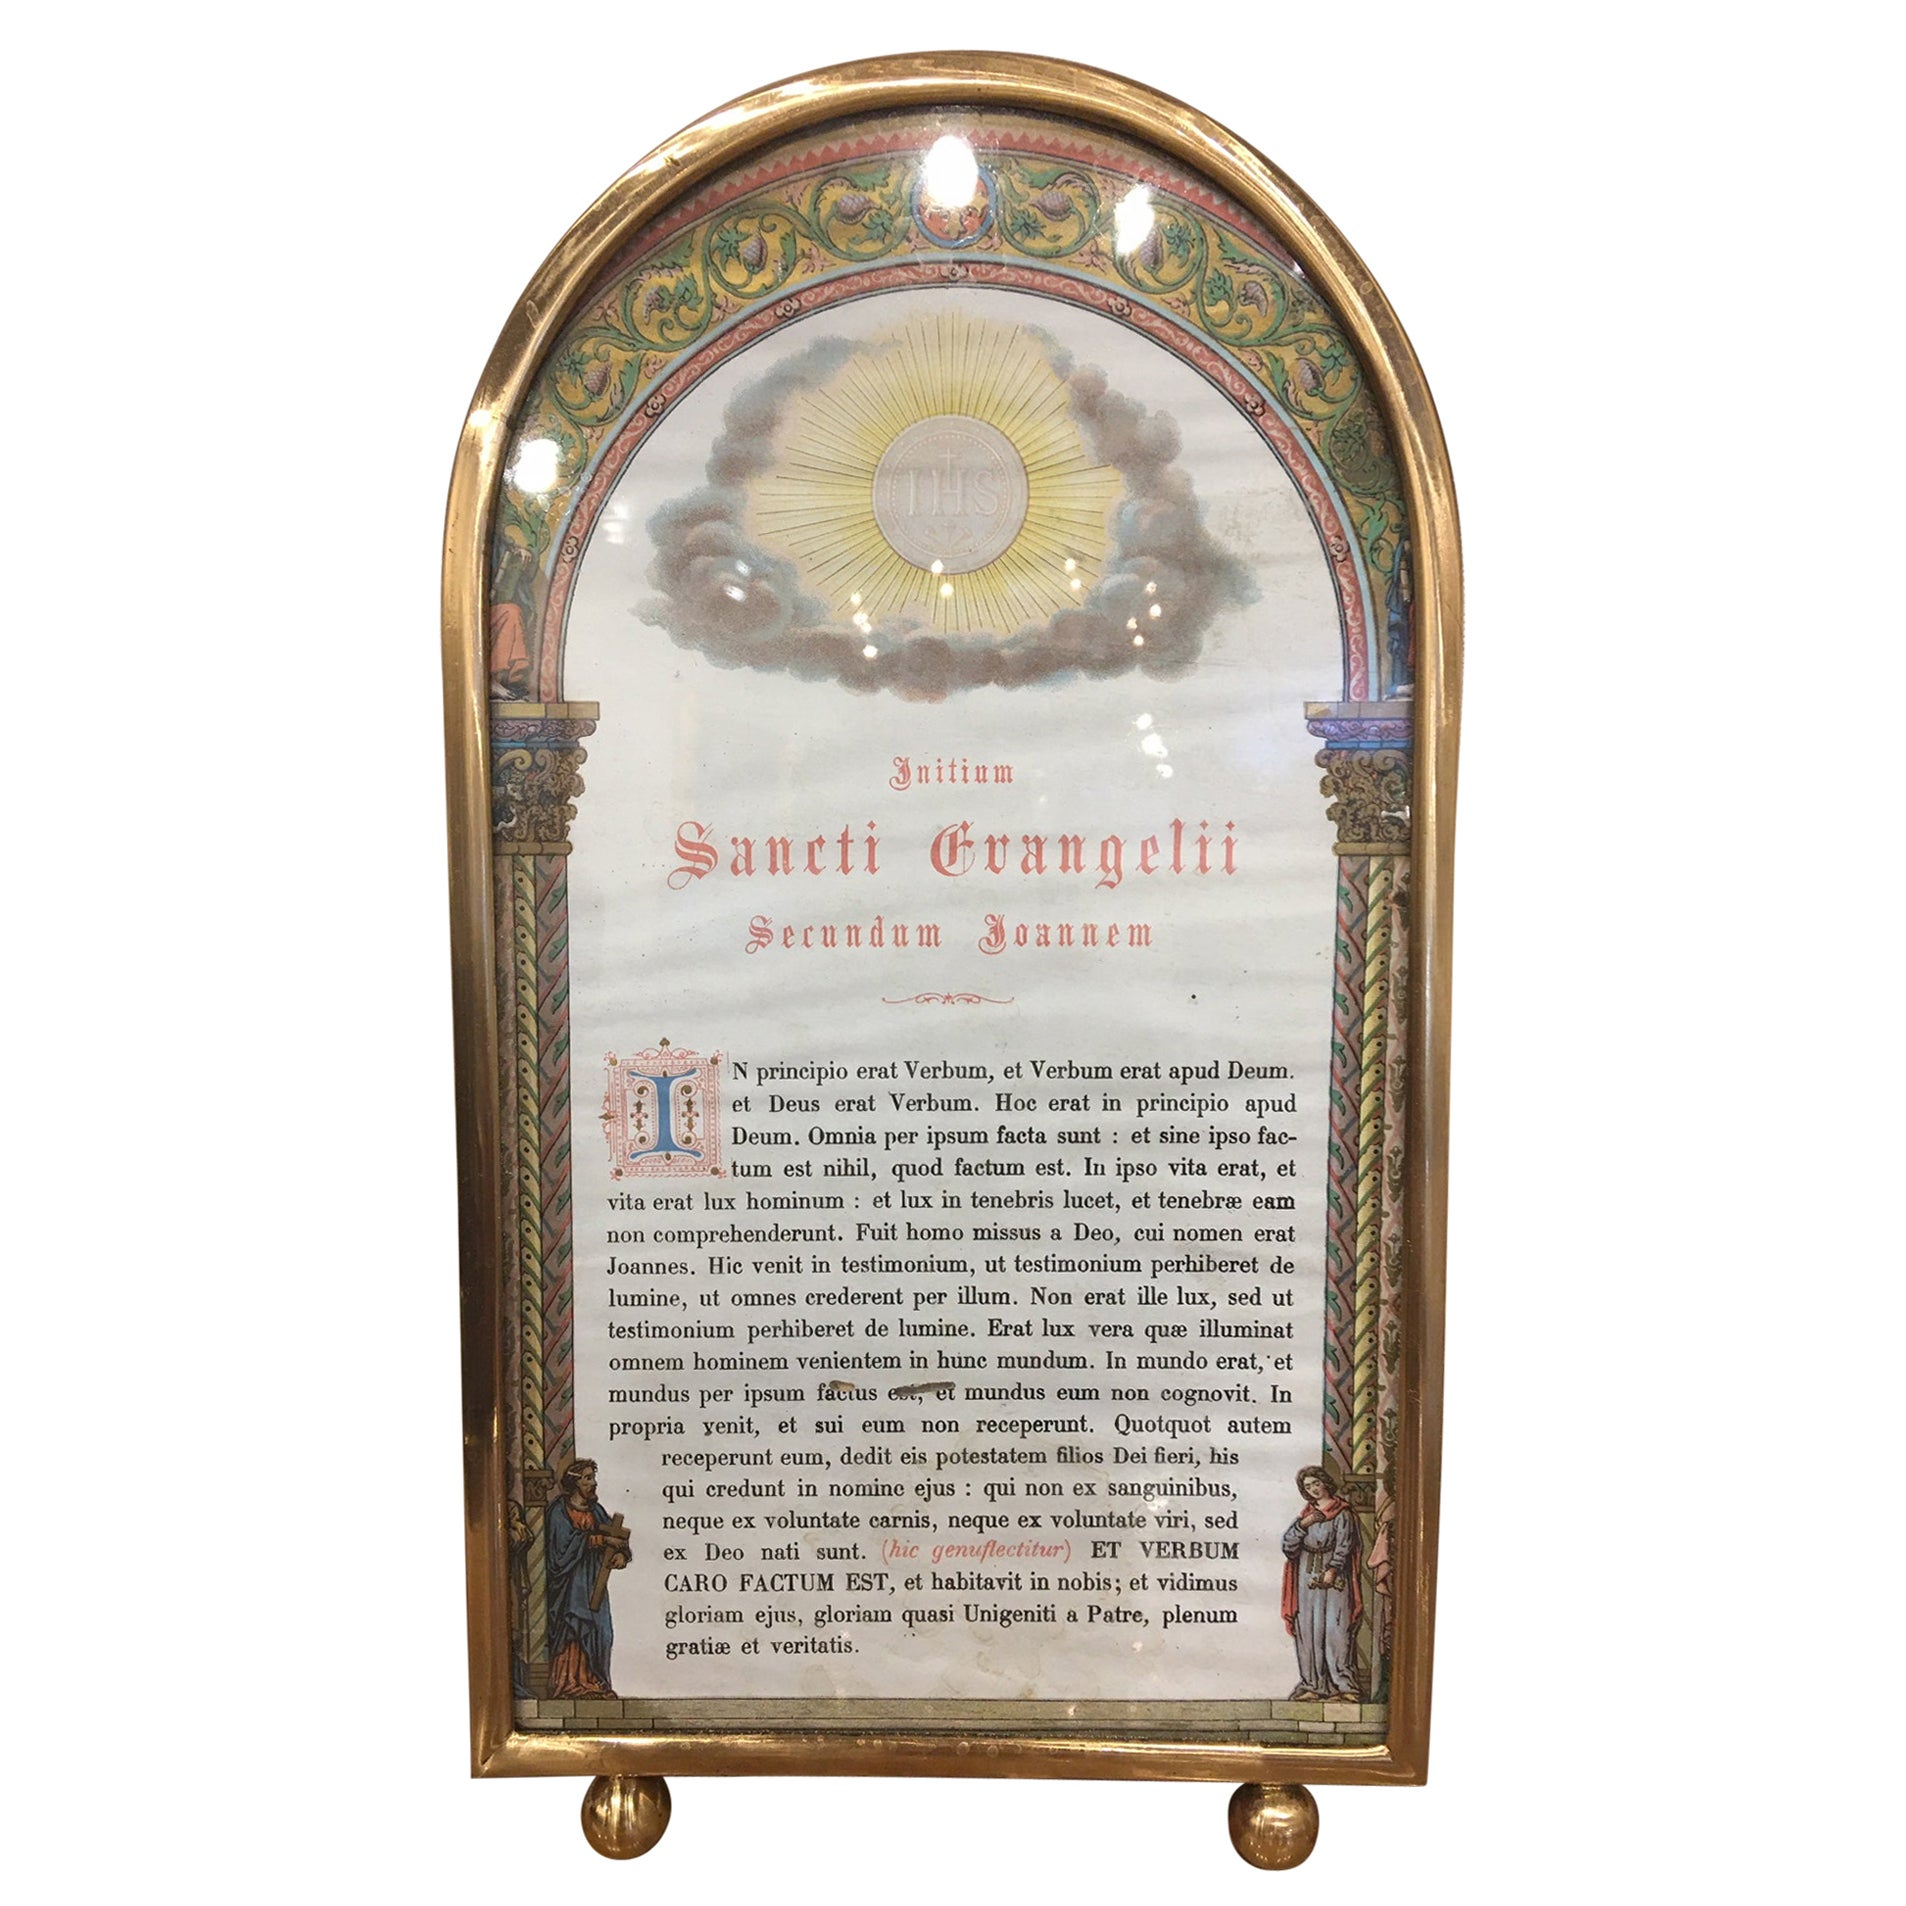 Polished Brass Picture Frame with Decorative Trim Around, 19th Century